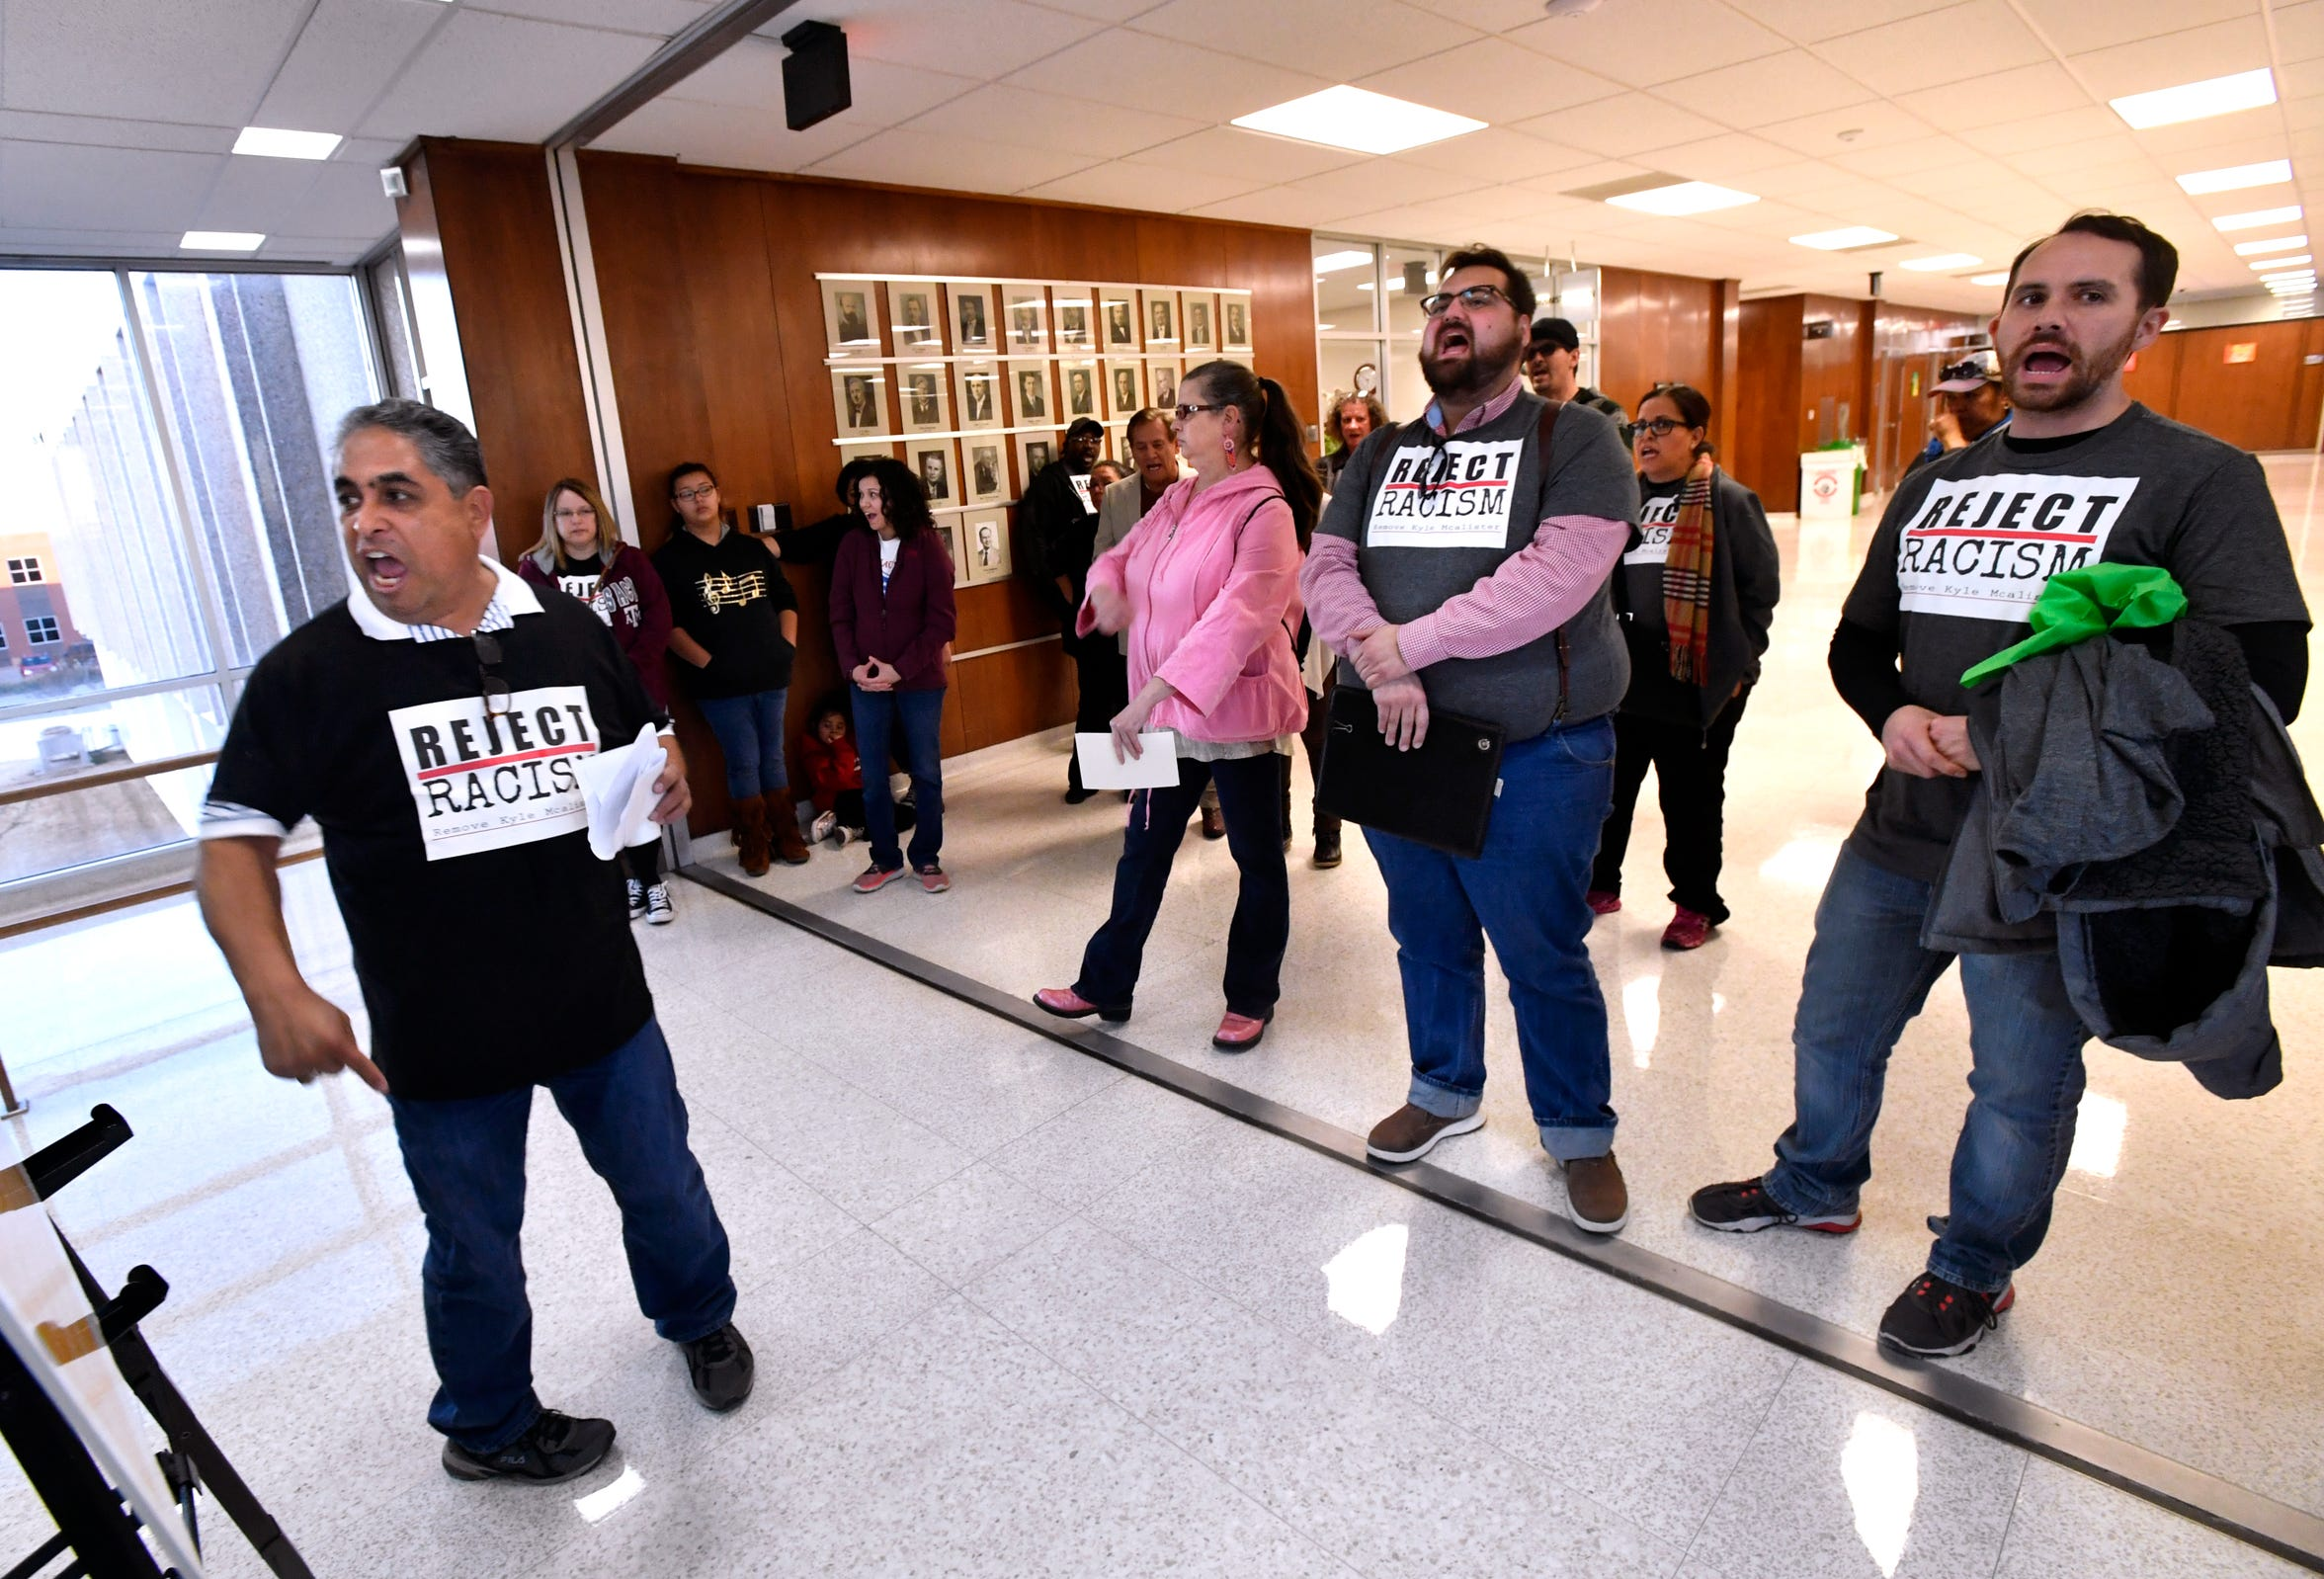 """AISD board member Samuel Garcia (left) and others chant """"Shame, shame!"""" after the Abilene City Council voted not to change the agenda to allow for public comment before voting on the censure of member Kyle McAlister on Jan. 24. Garcia and others had left the chambers to stand in the hallway outside to voice their displeasure."""